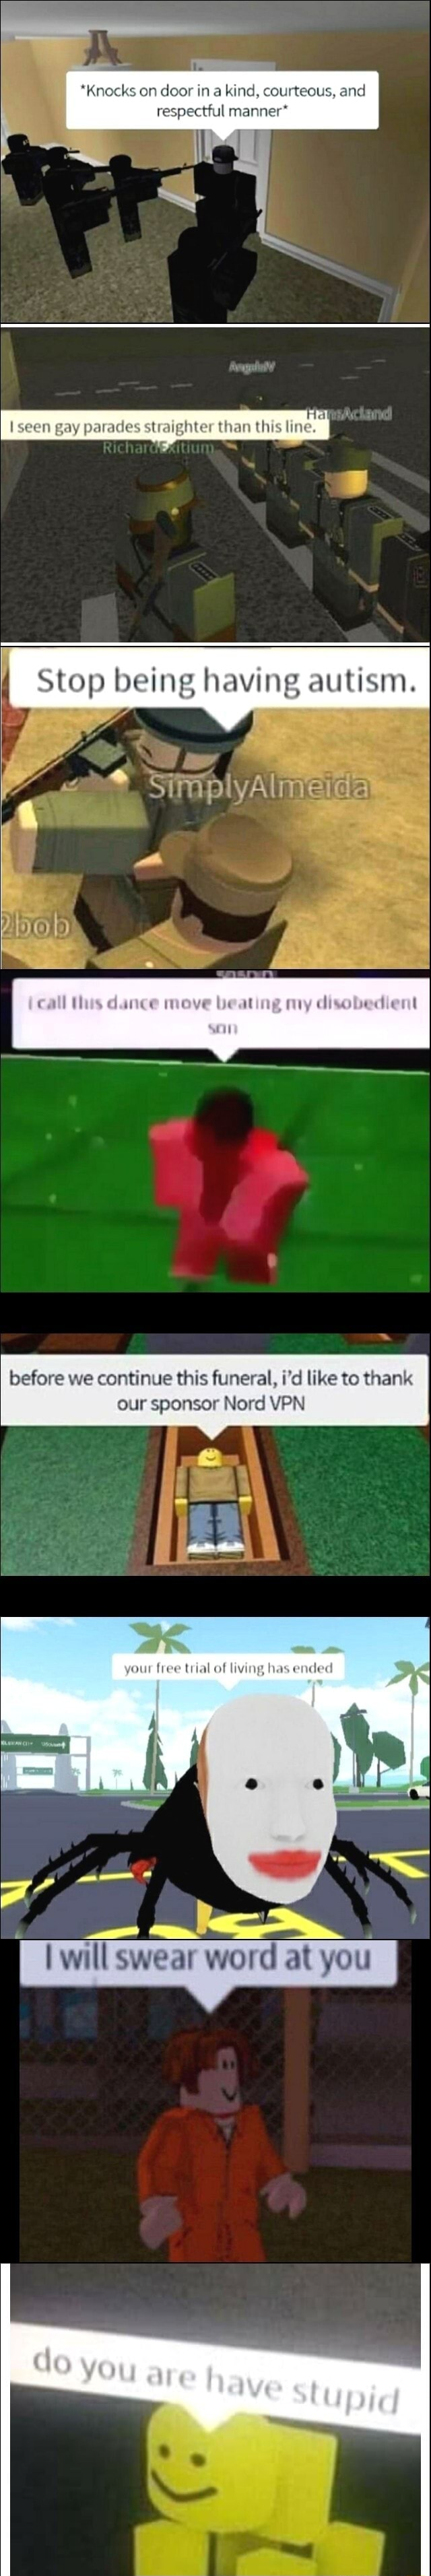 *Knocks on door ina kind, courteous, and respectful manner* seen gay parades straighter than this line. SS eing having autism. Soul, before we continue this funeral, i'd like to thank our sponsor lord VPN your free trial of living has ended will swear word at you Stupid memes